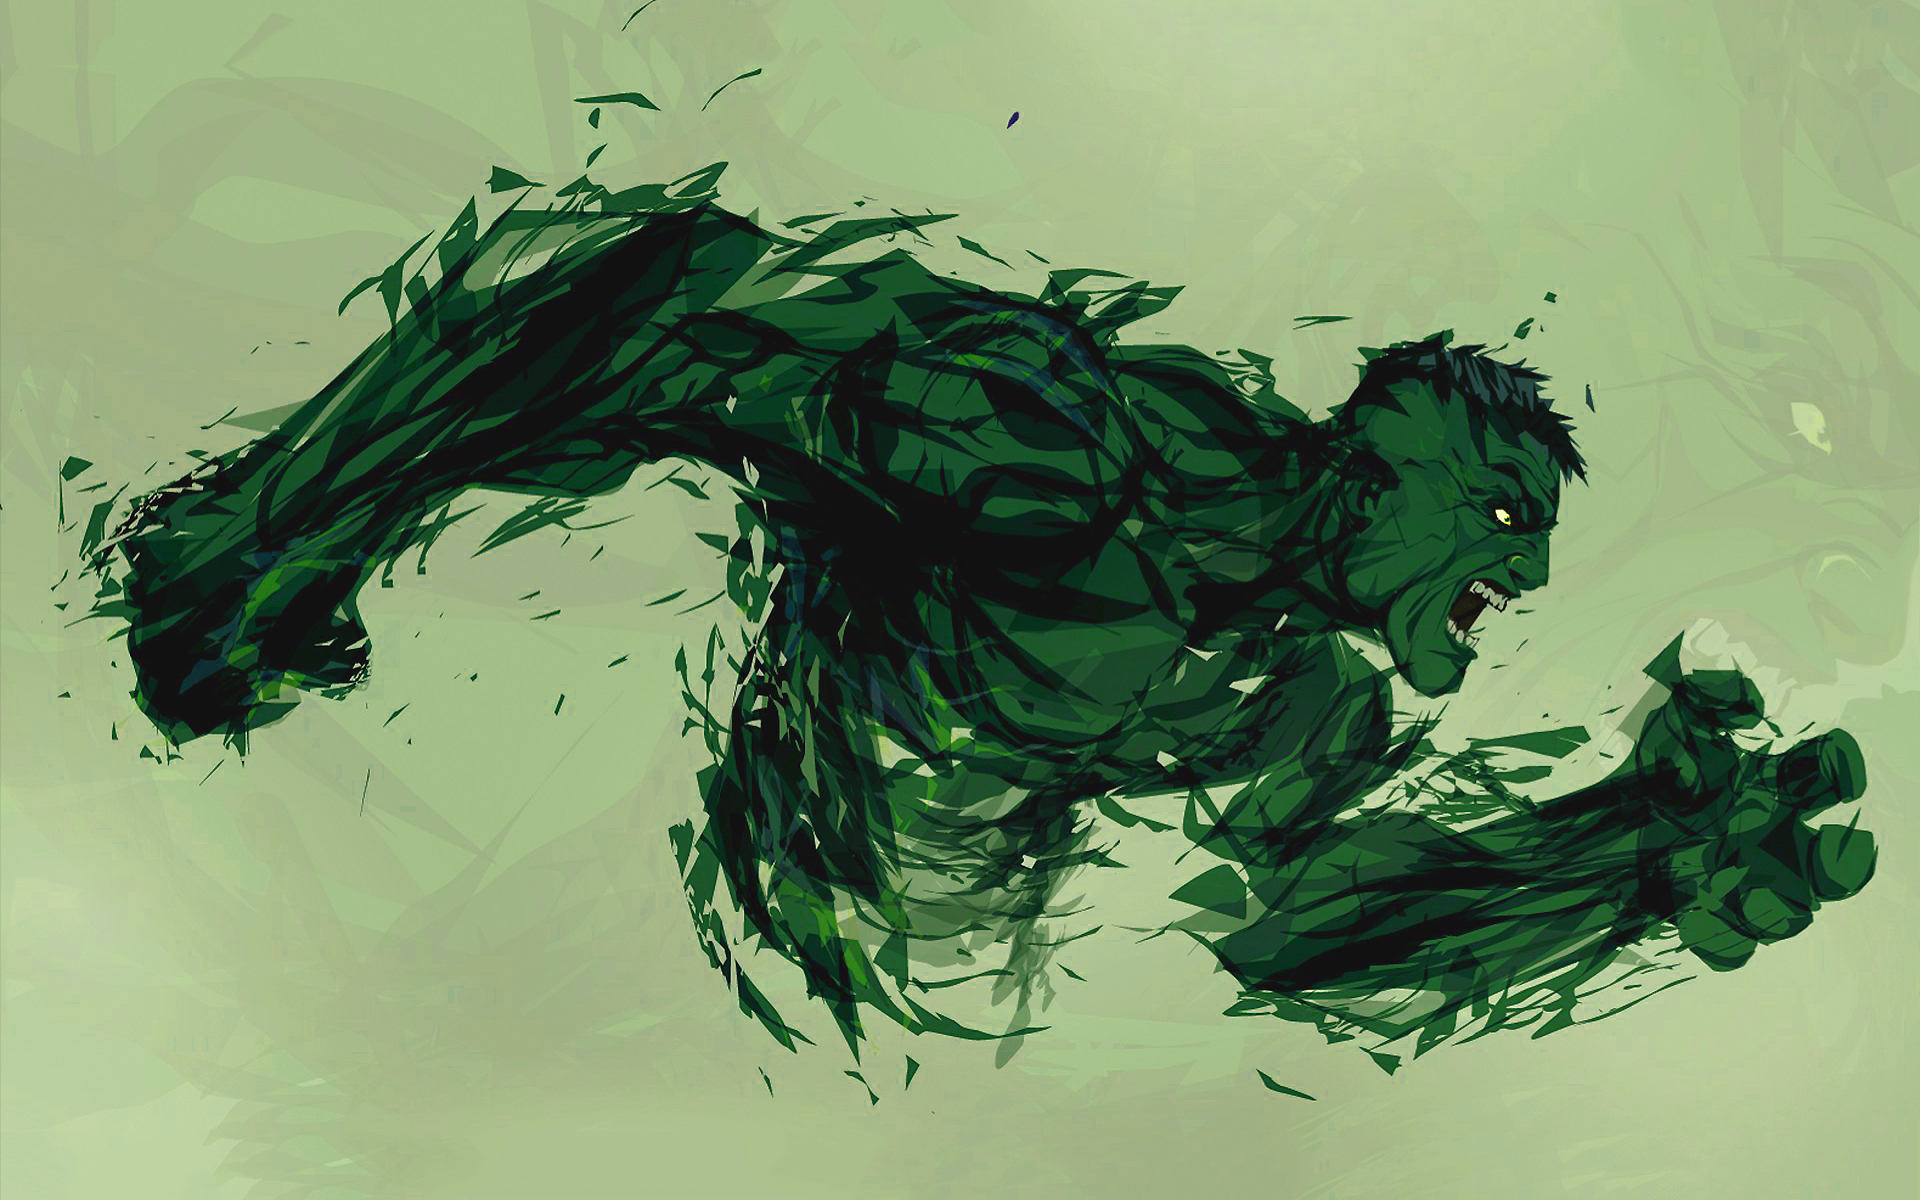 Hulk fan art